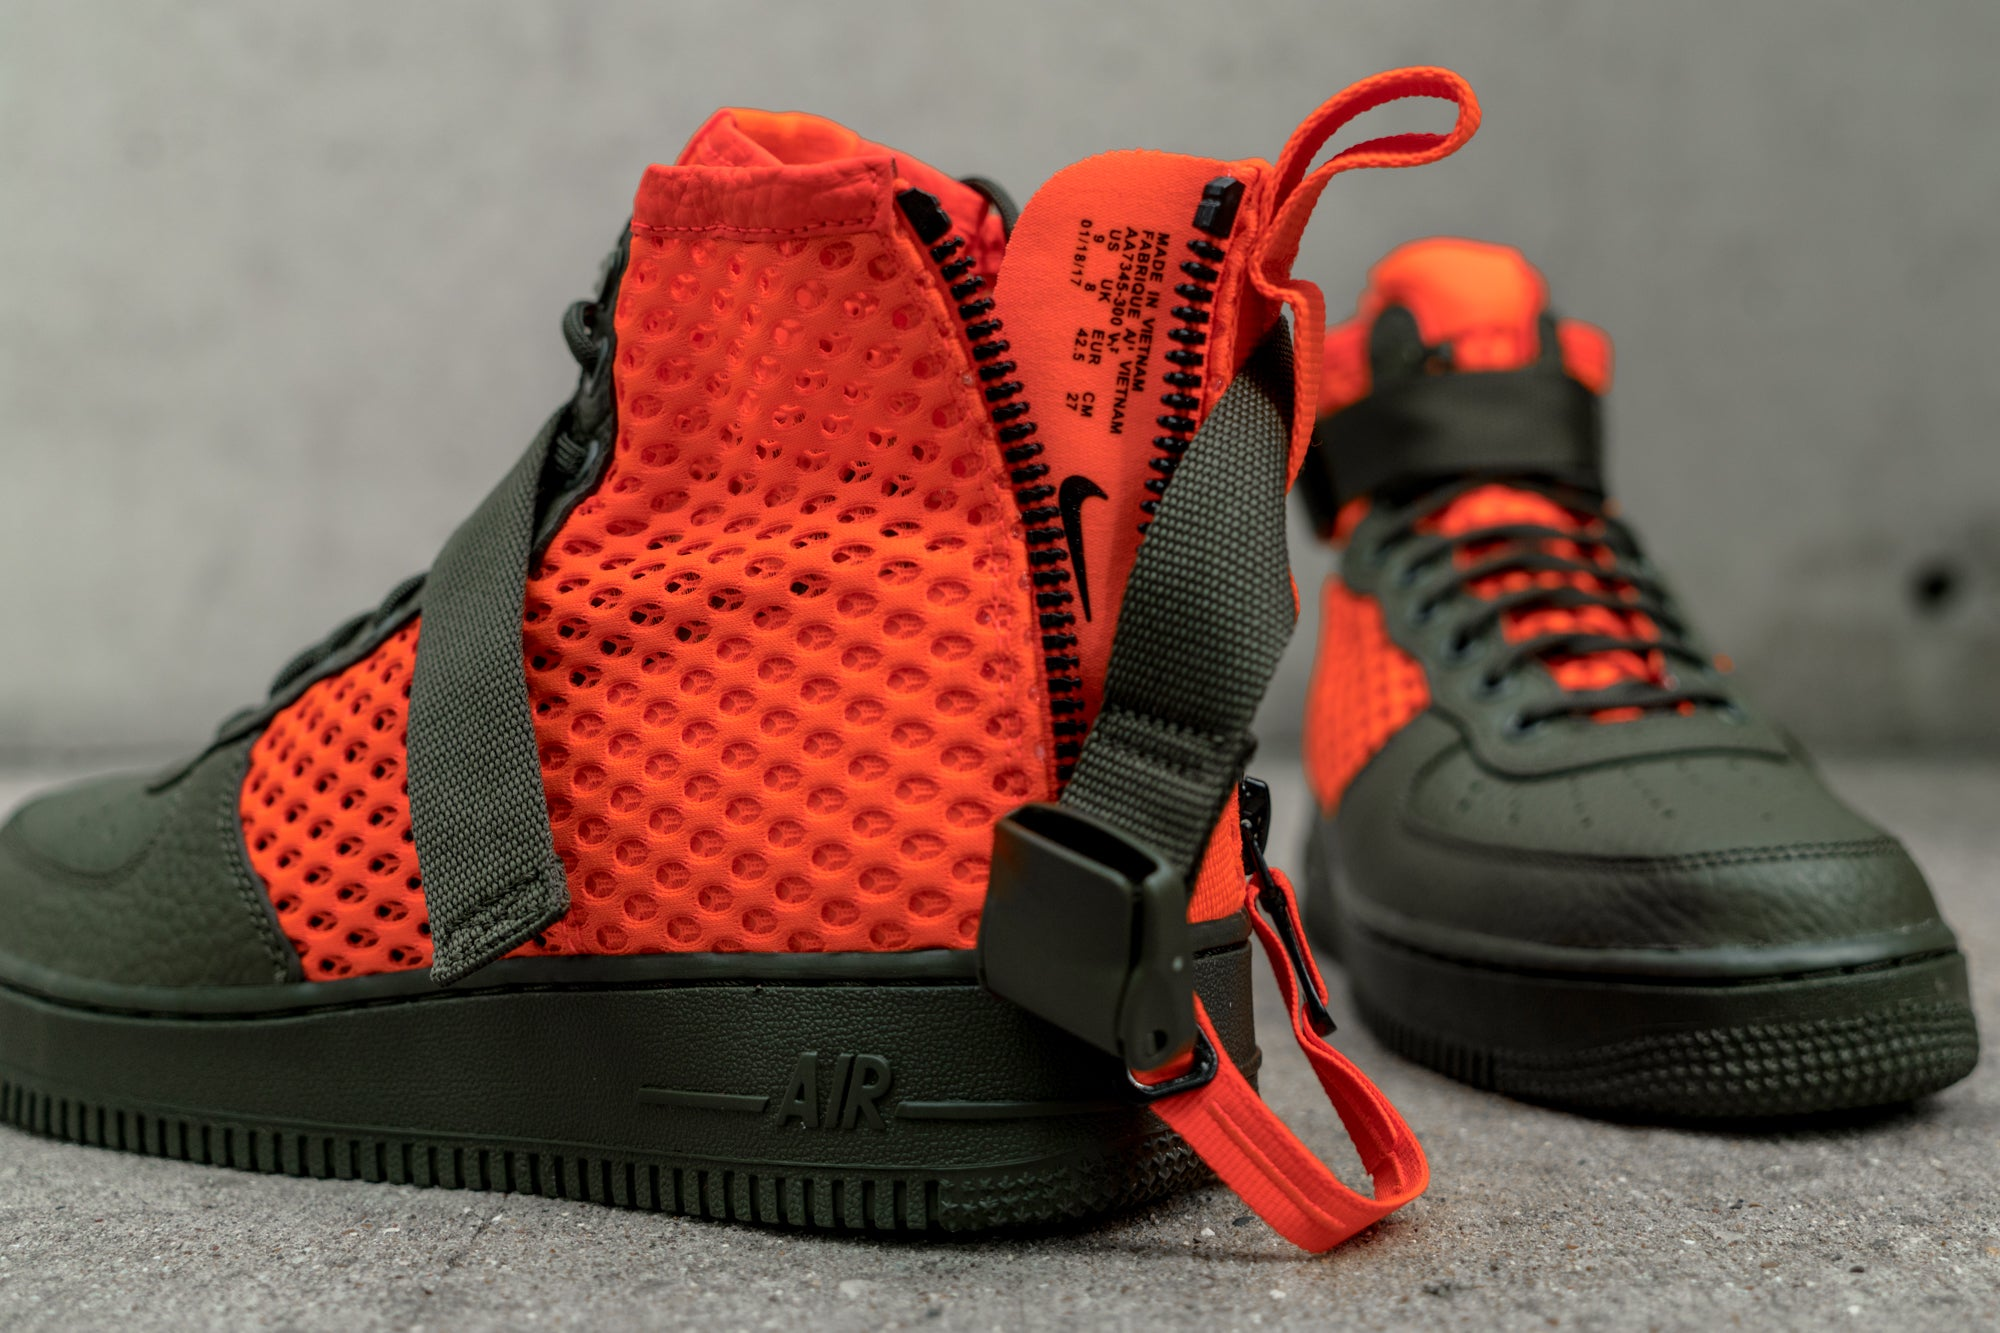 Now Available: Nike Special Field Air Force 1 Mid Cargo